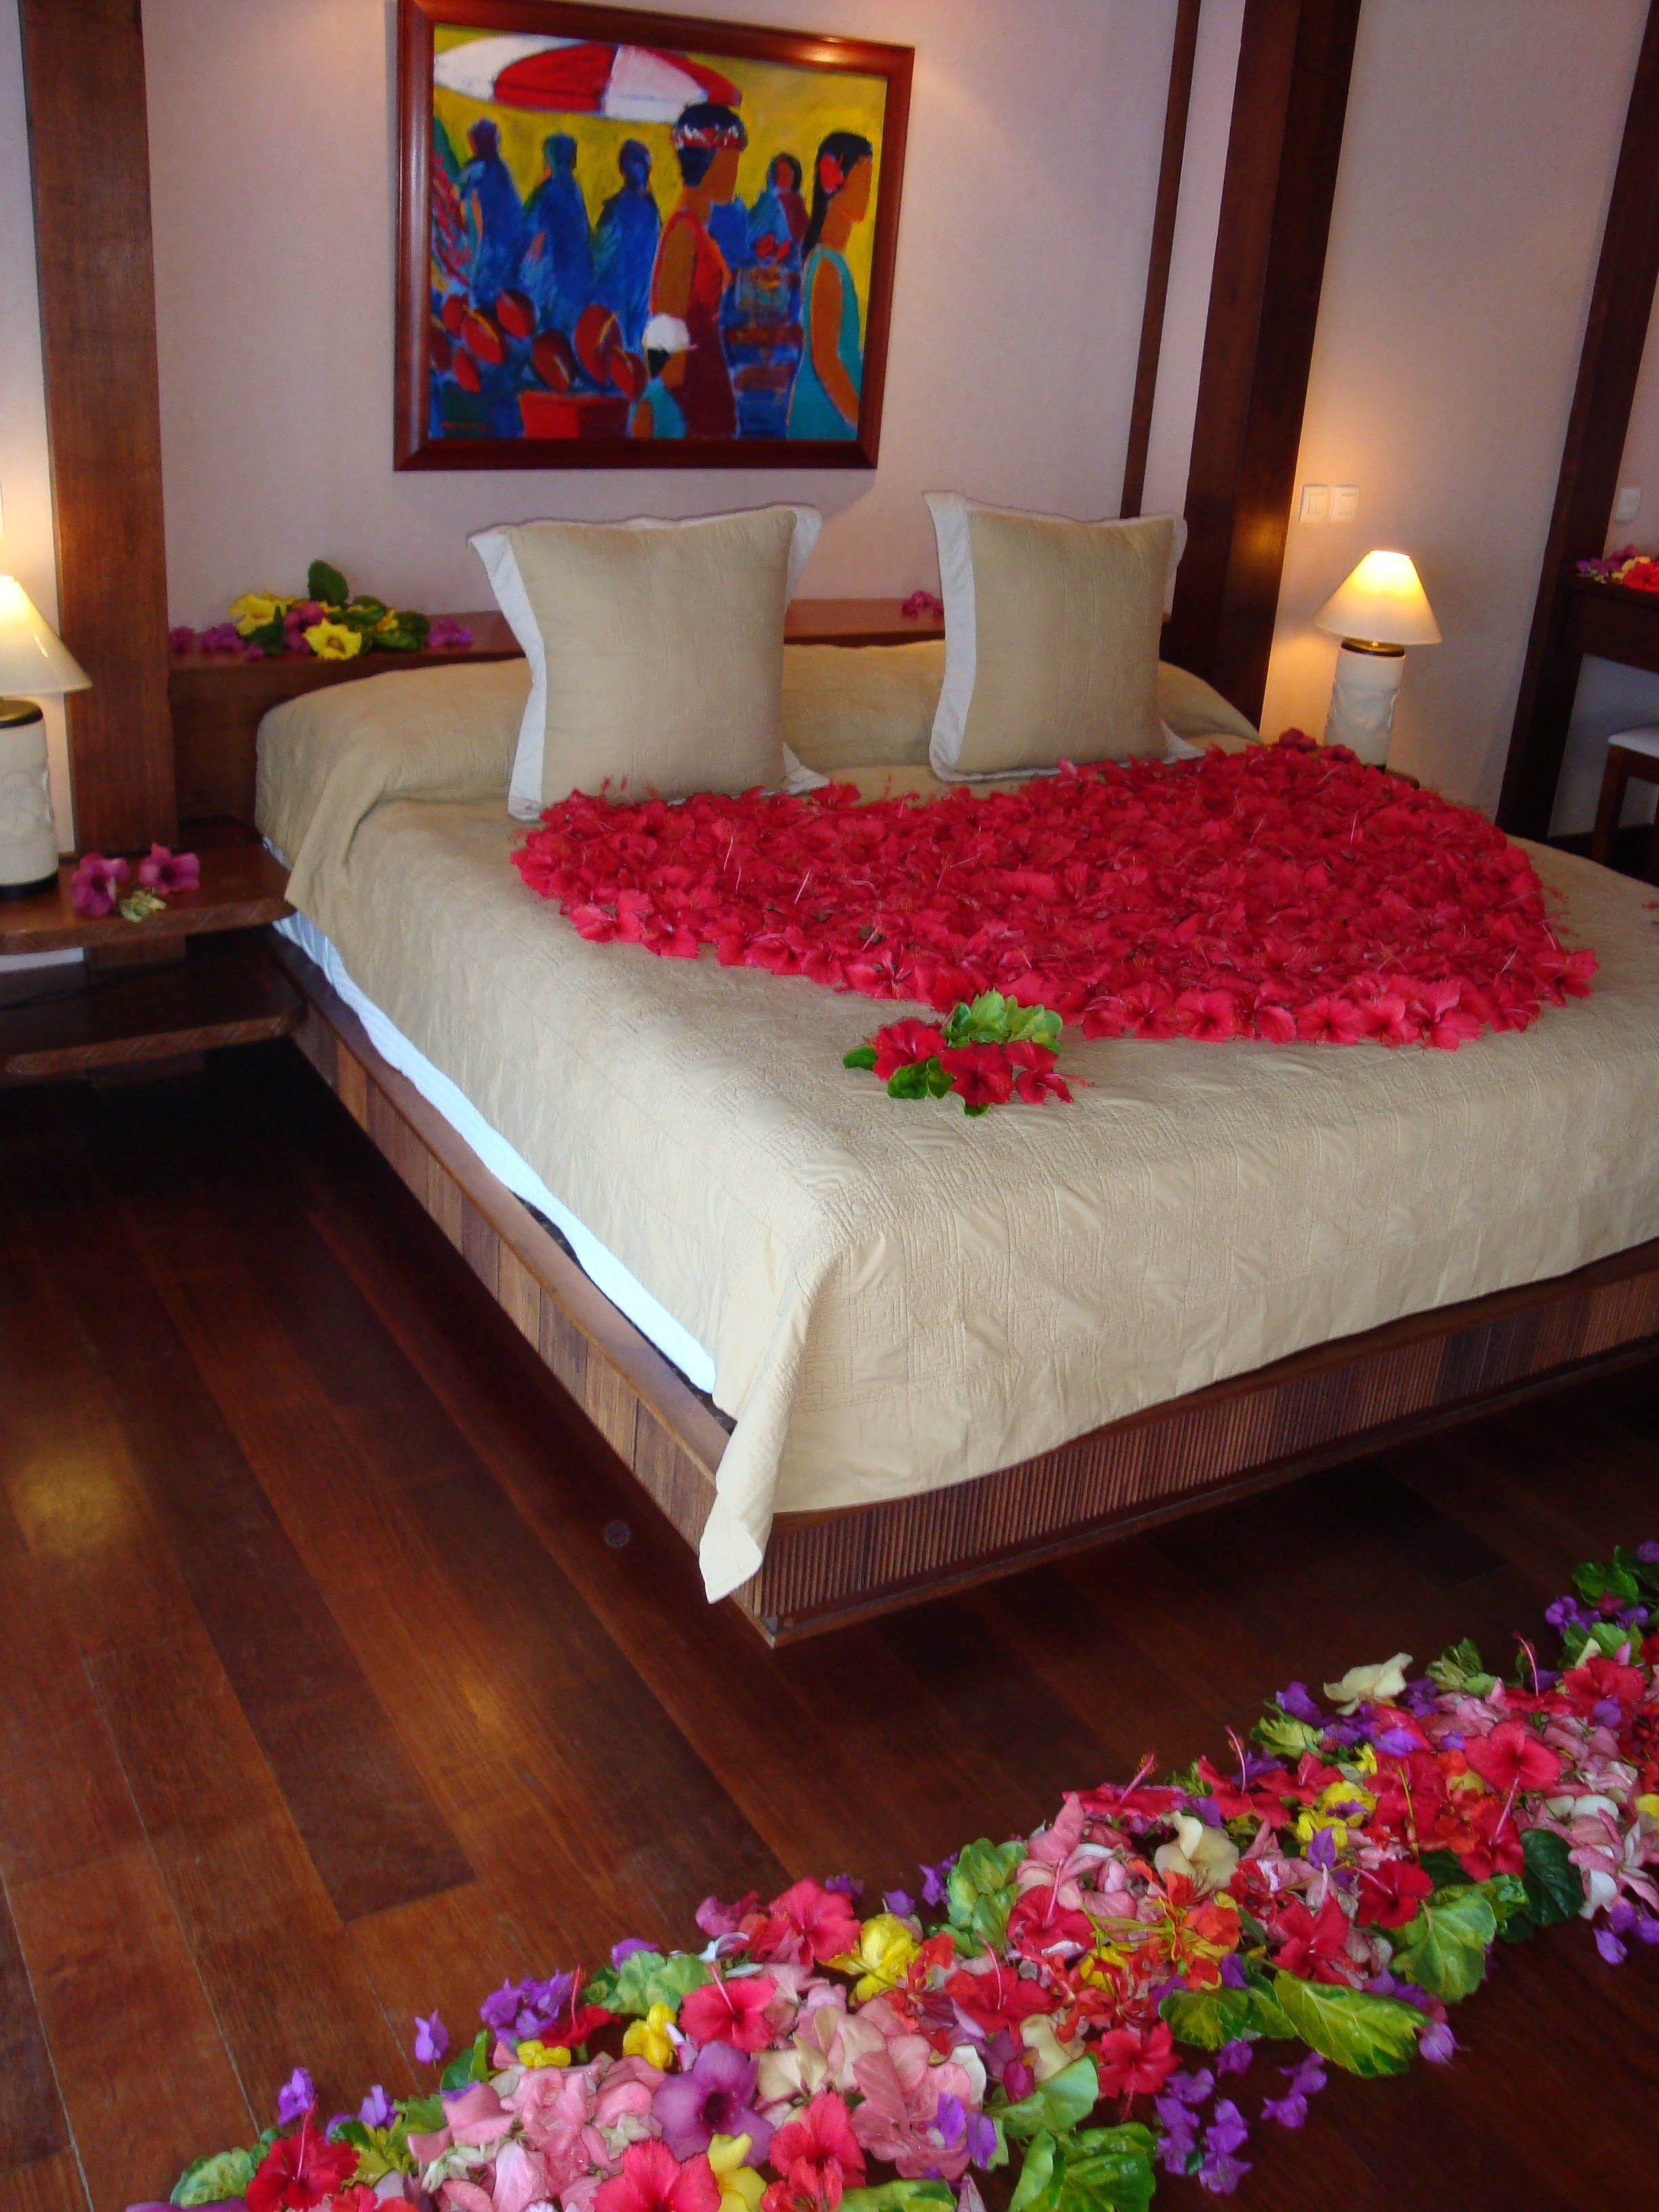 Romantic Room Decoration: To Stay In This Room Just